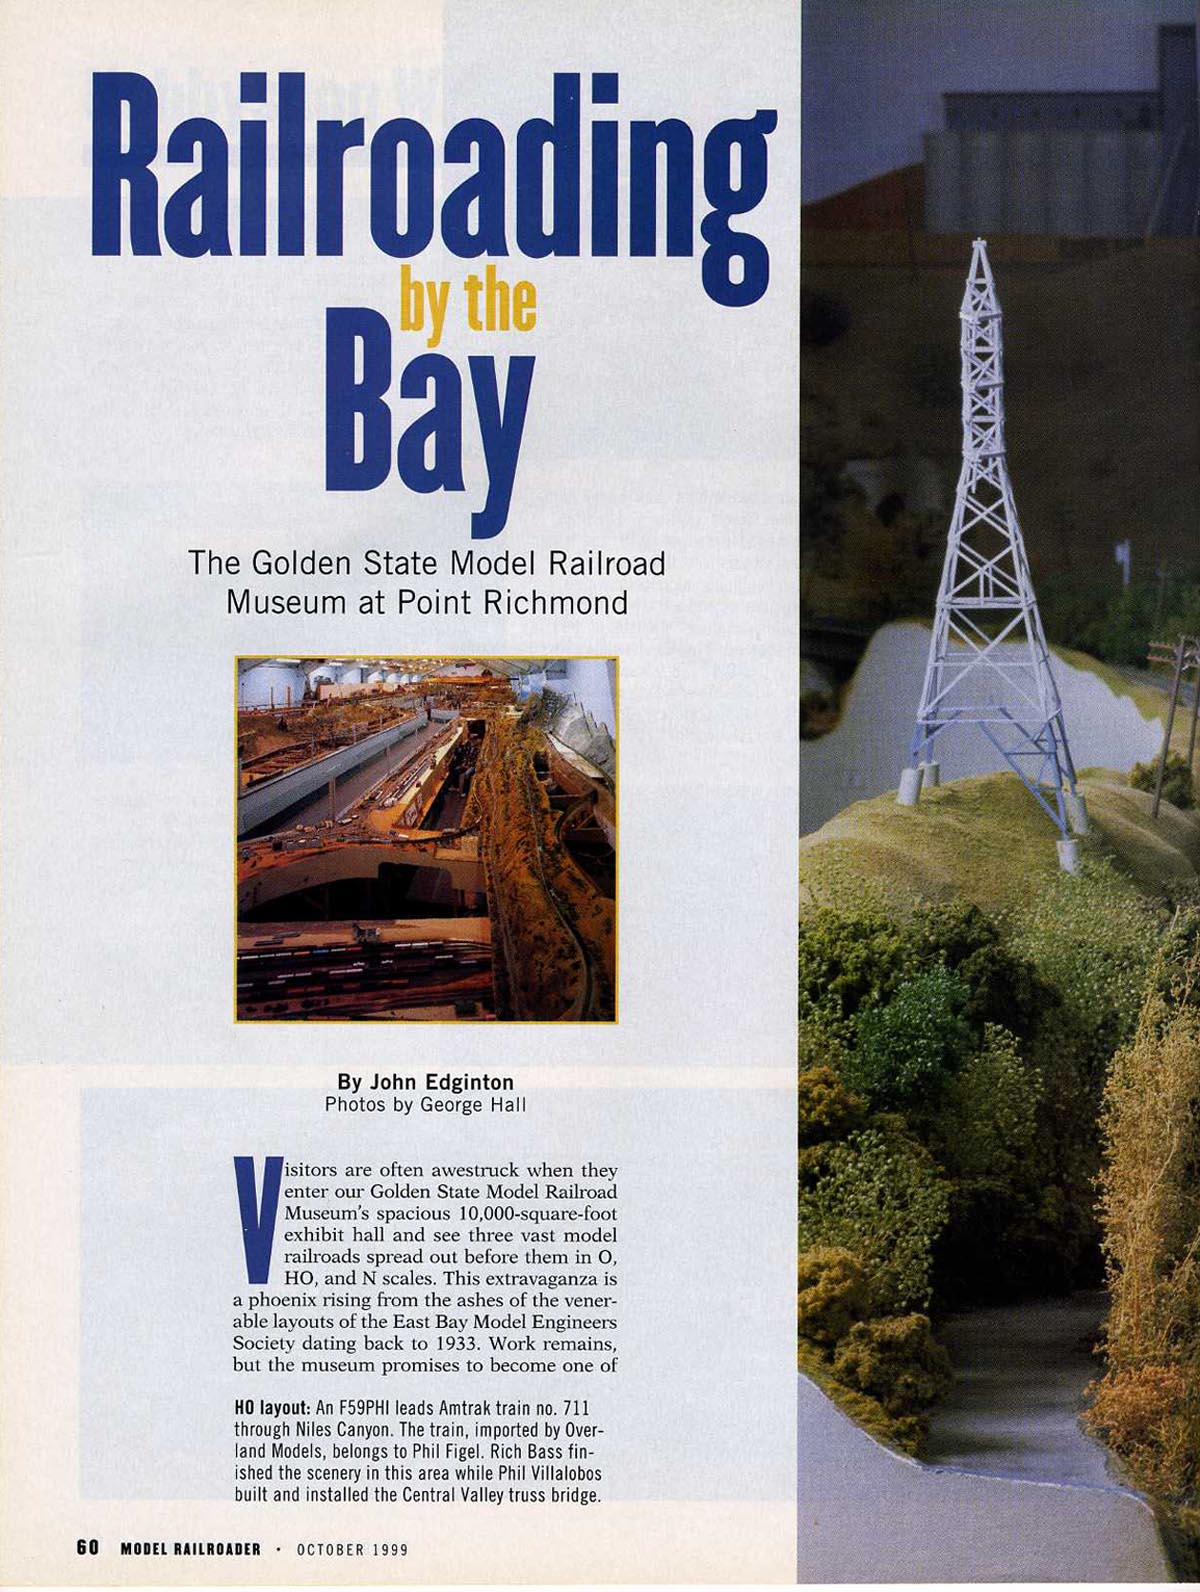 Gsmrm Ebmes Publications And Multimedia Two Circuits Model Railroader Magazine Railroading California Dreaming Golden State Railroad Museum